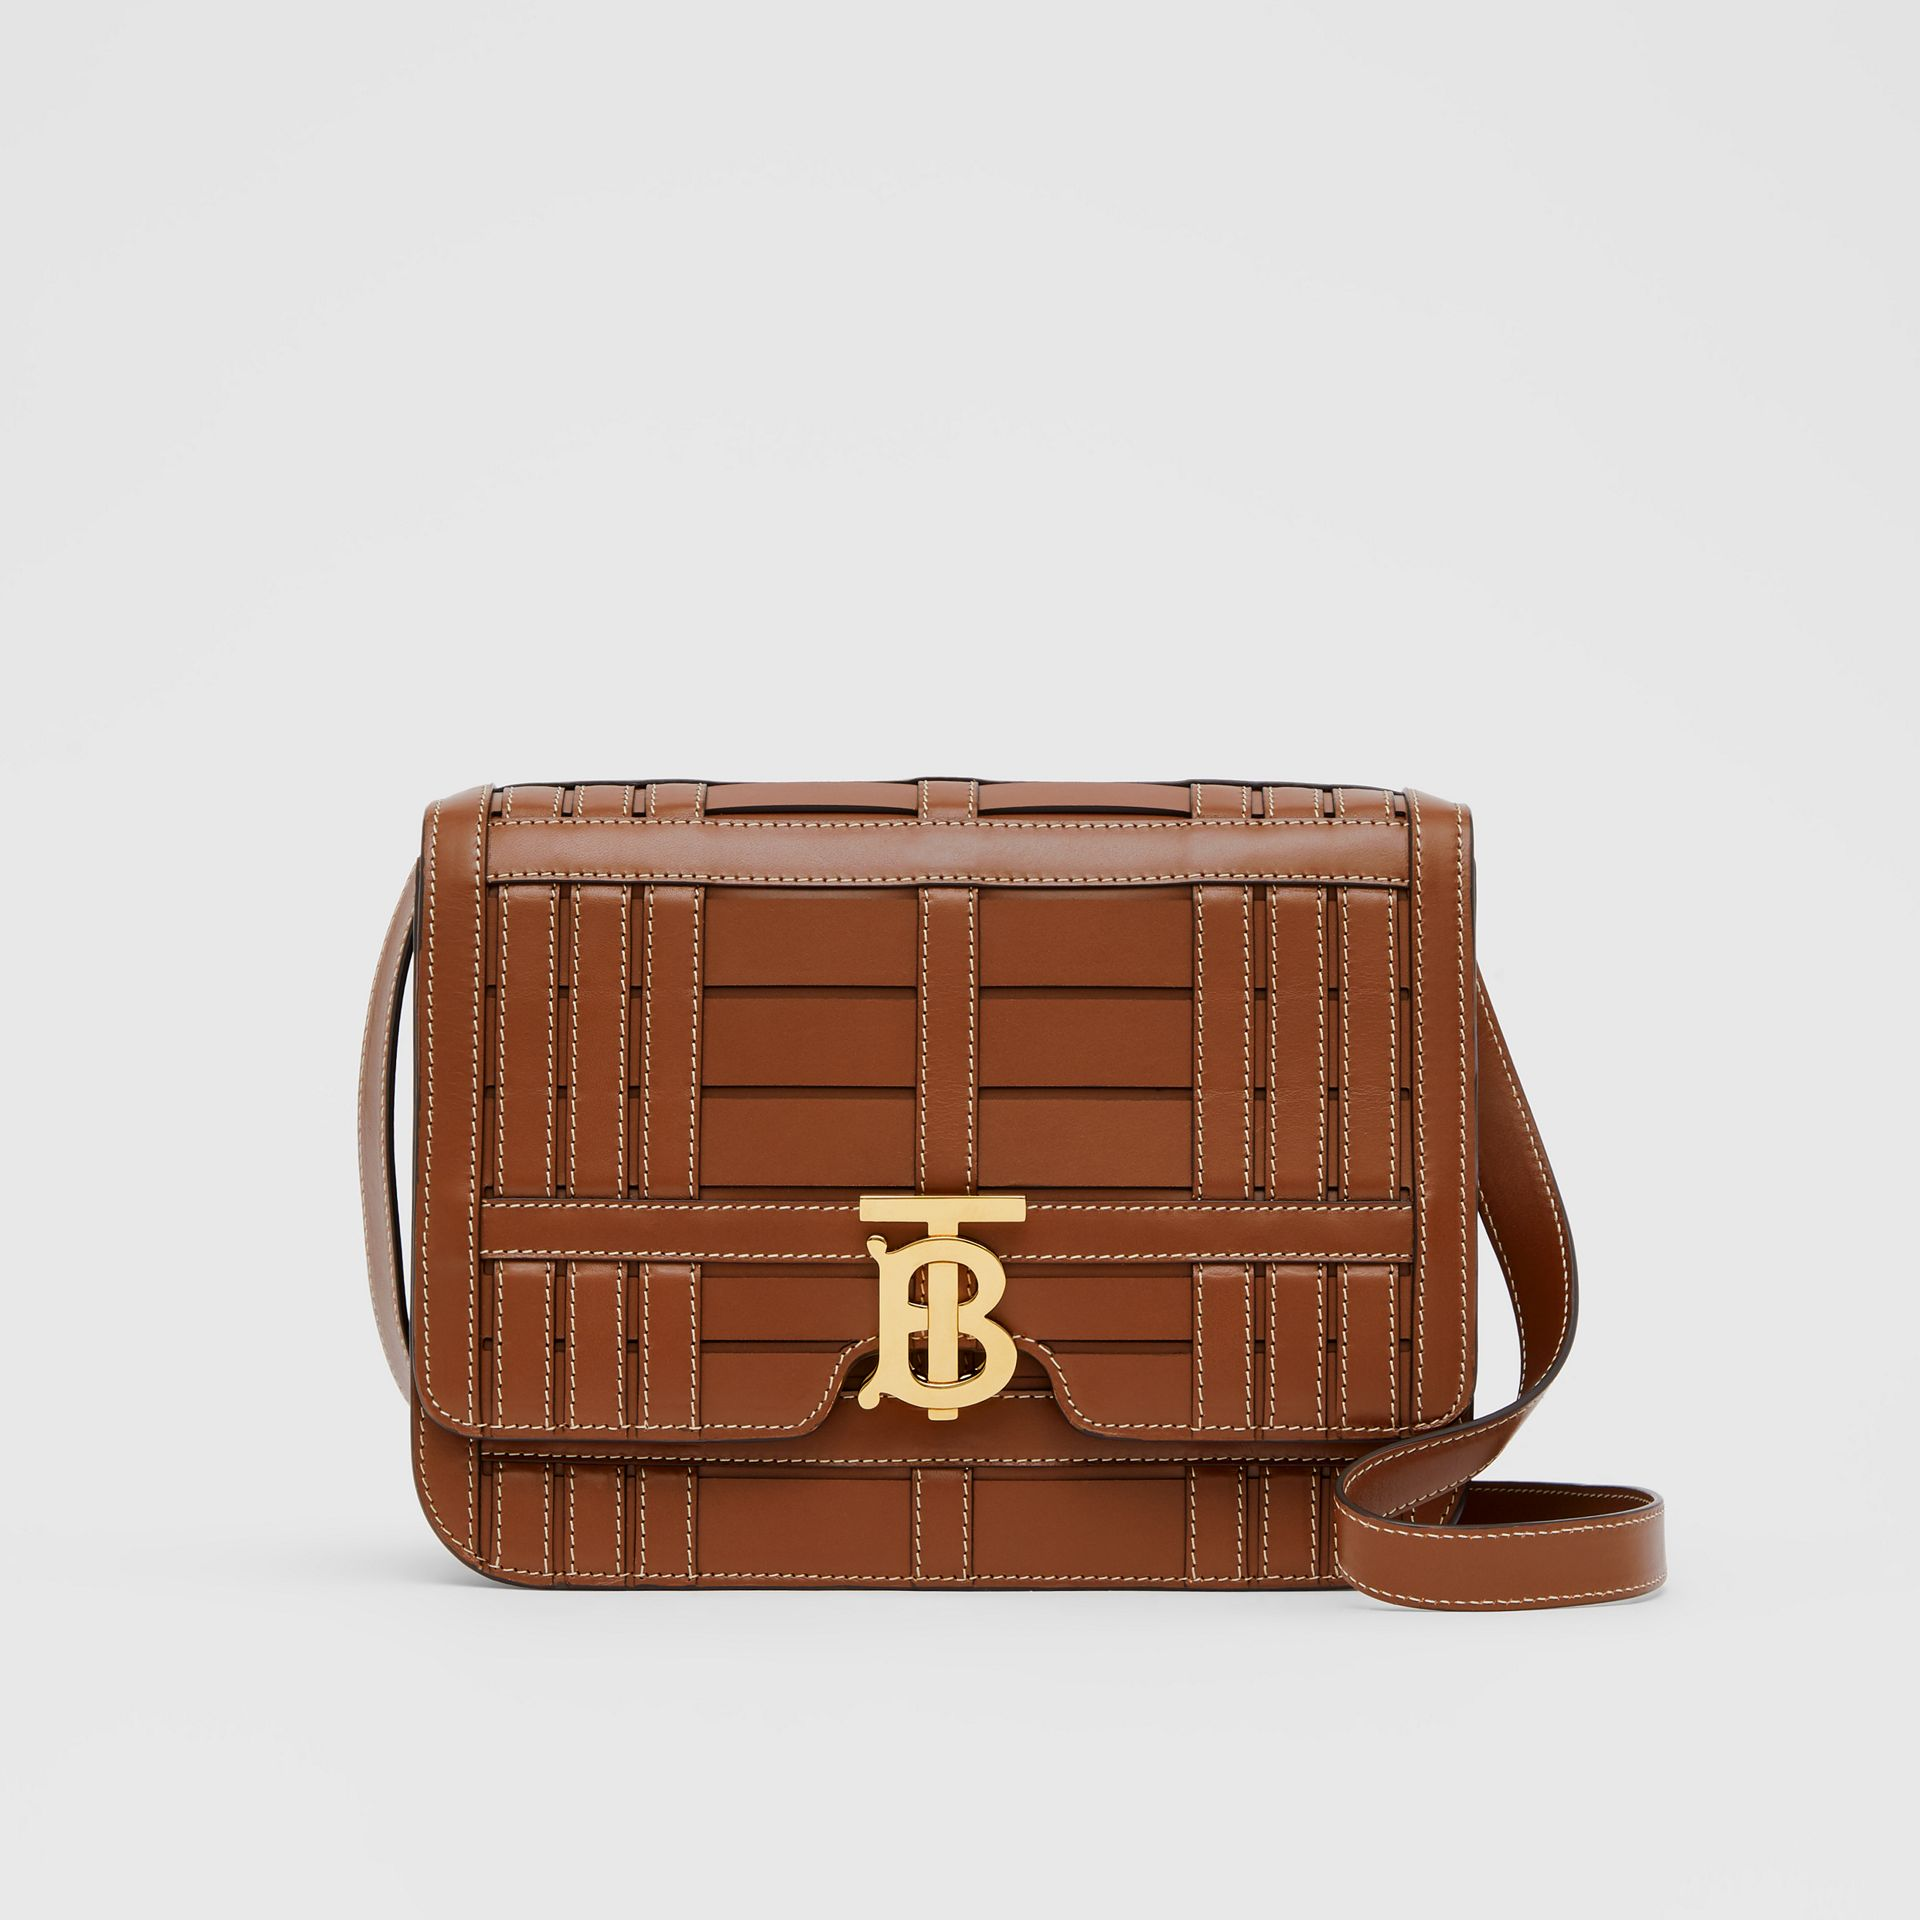 Medium Woven Leather TB Bag in Tan - Women | Burberry Canada - gallery image 0